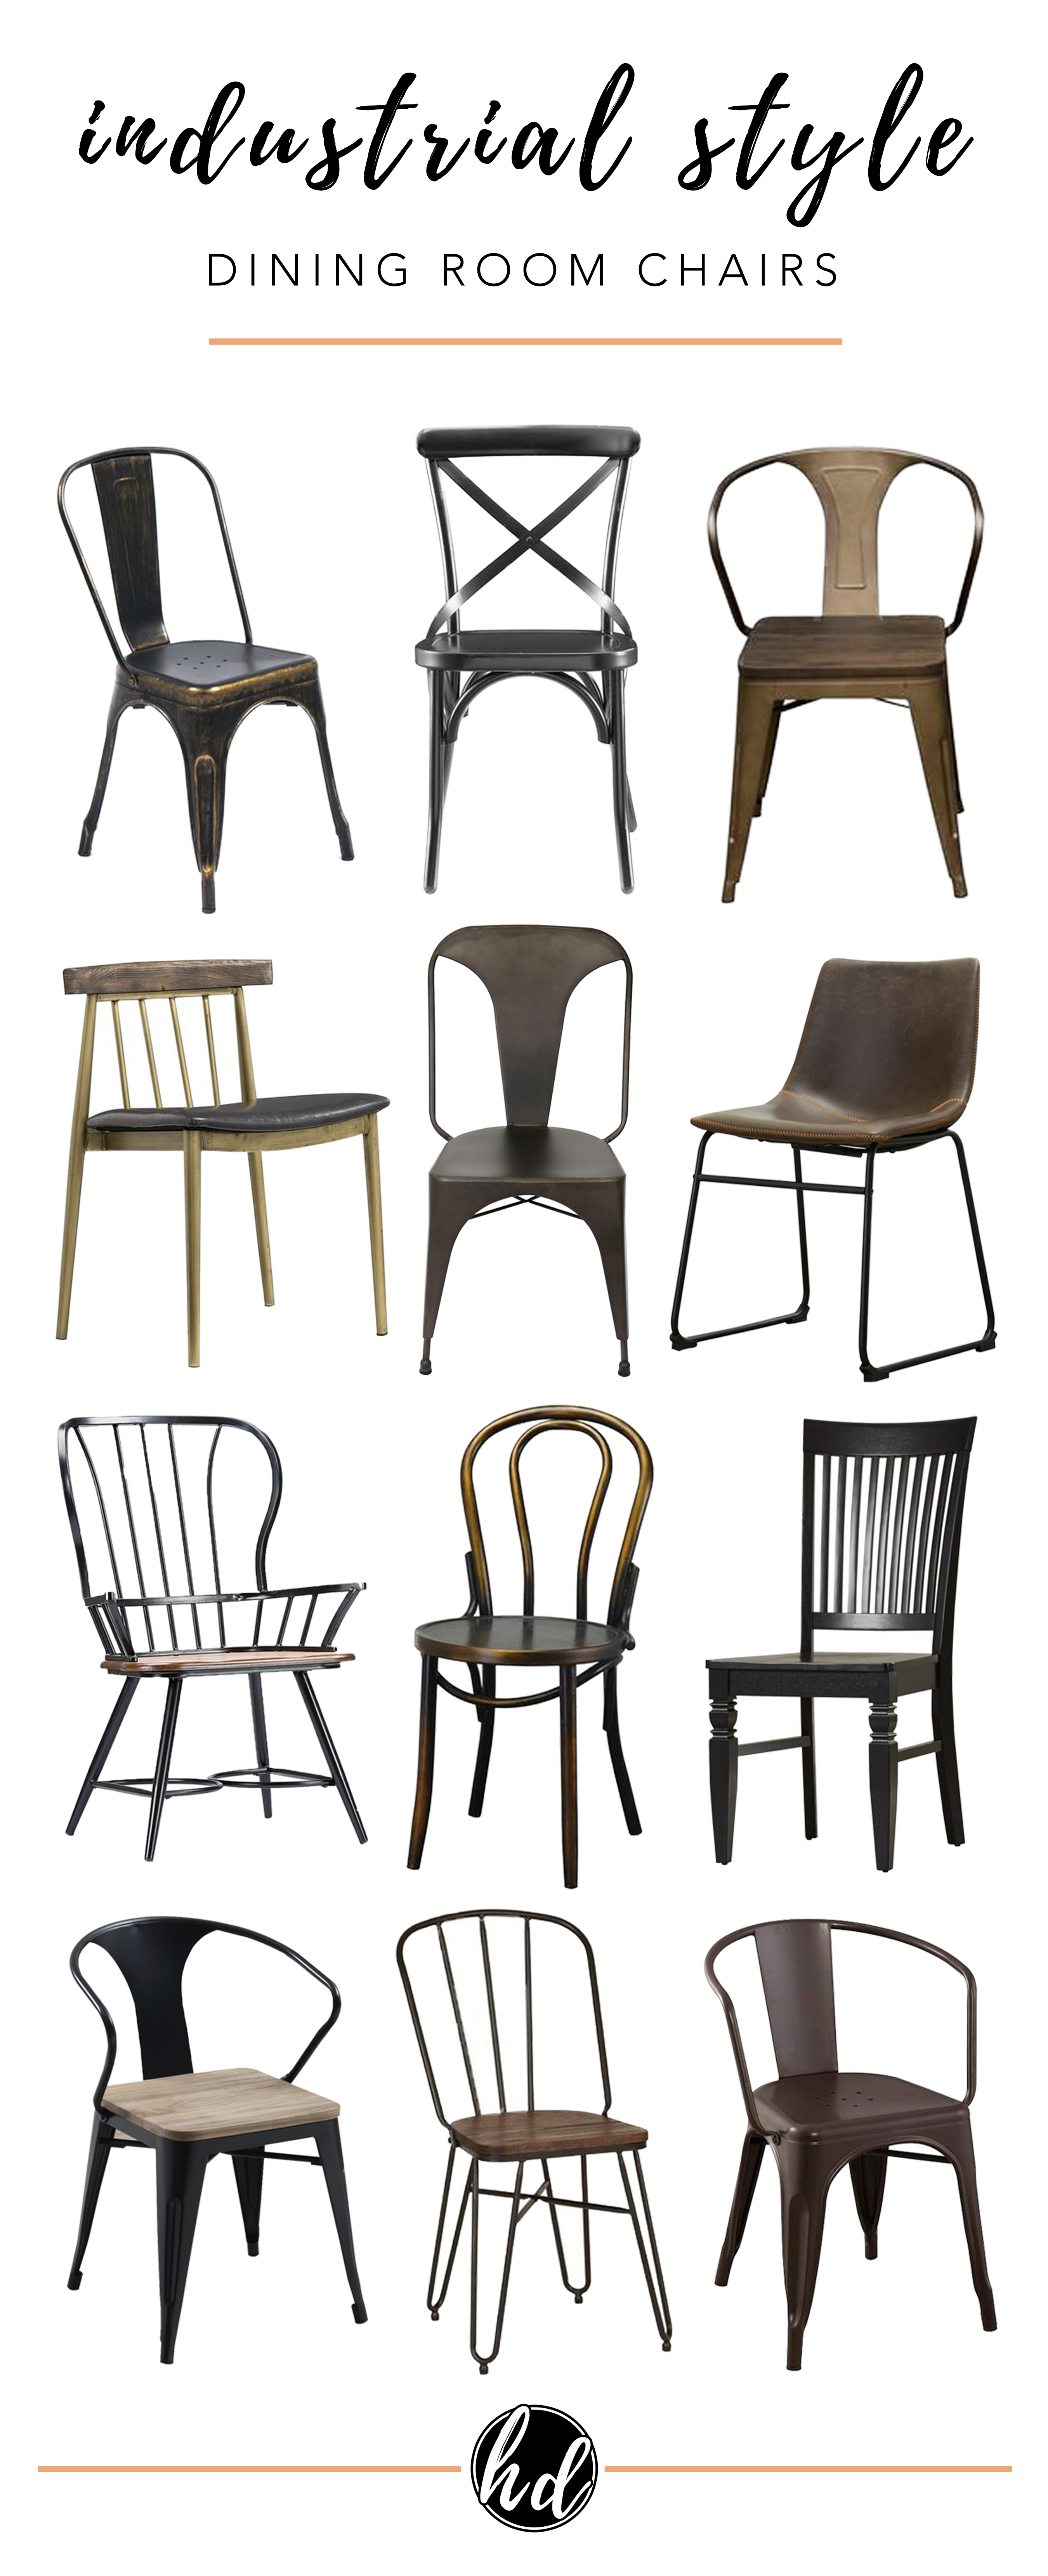 Affordable Modern Industrial Dining Chairs Dining Room